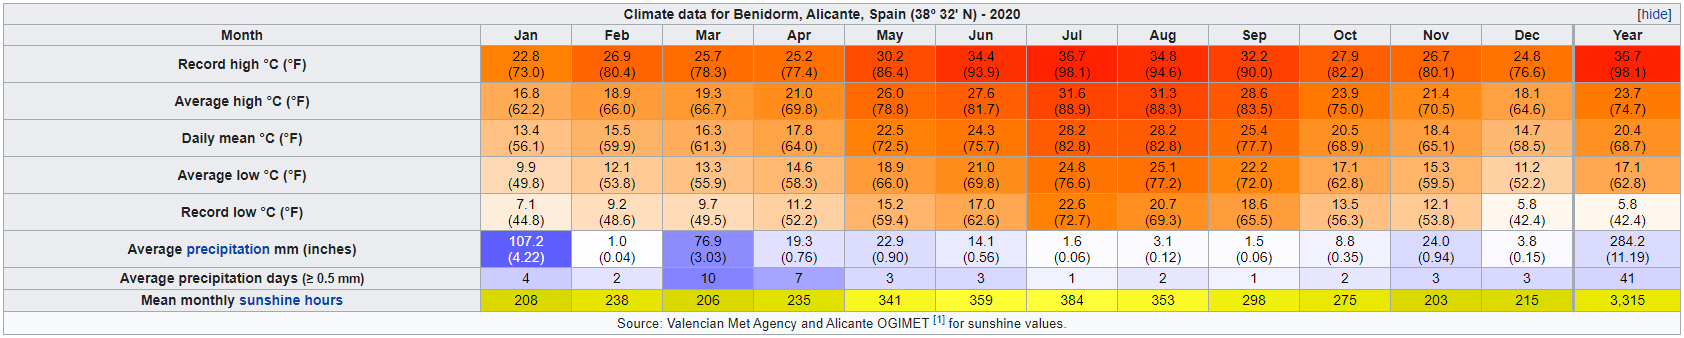 Benidorm-climate-2020.png